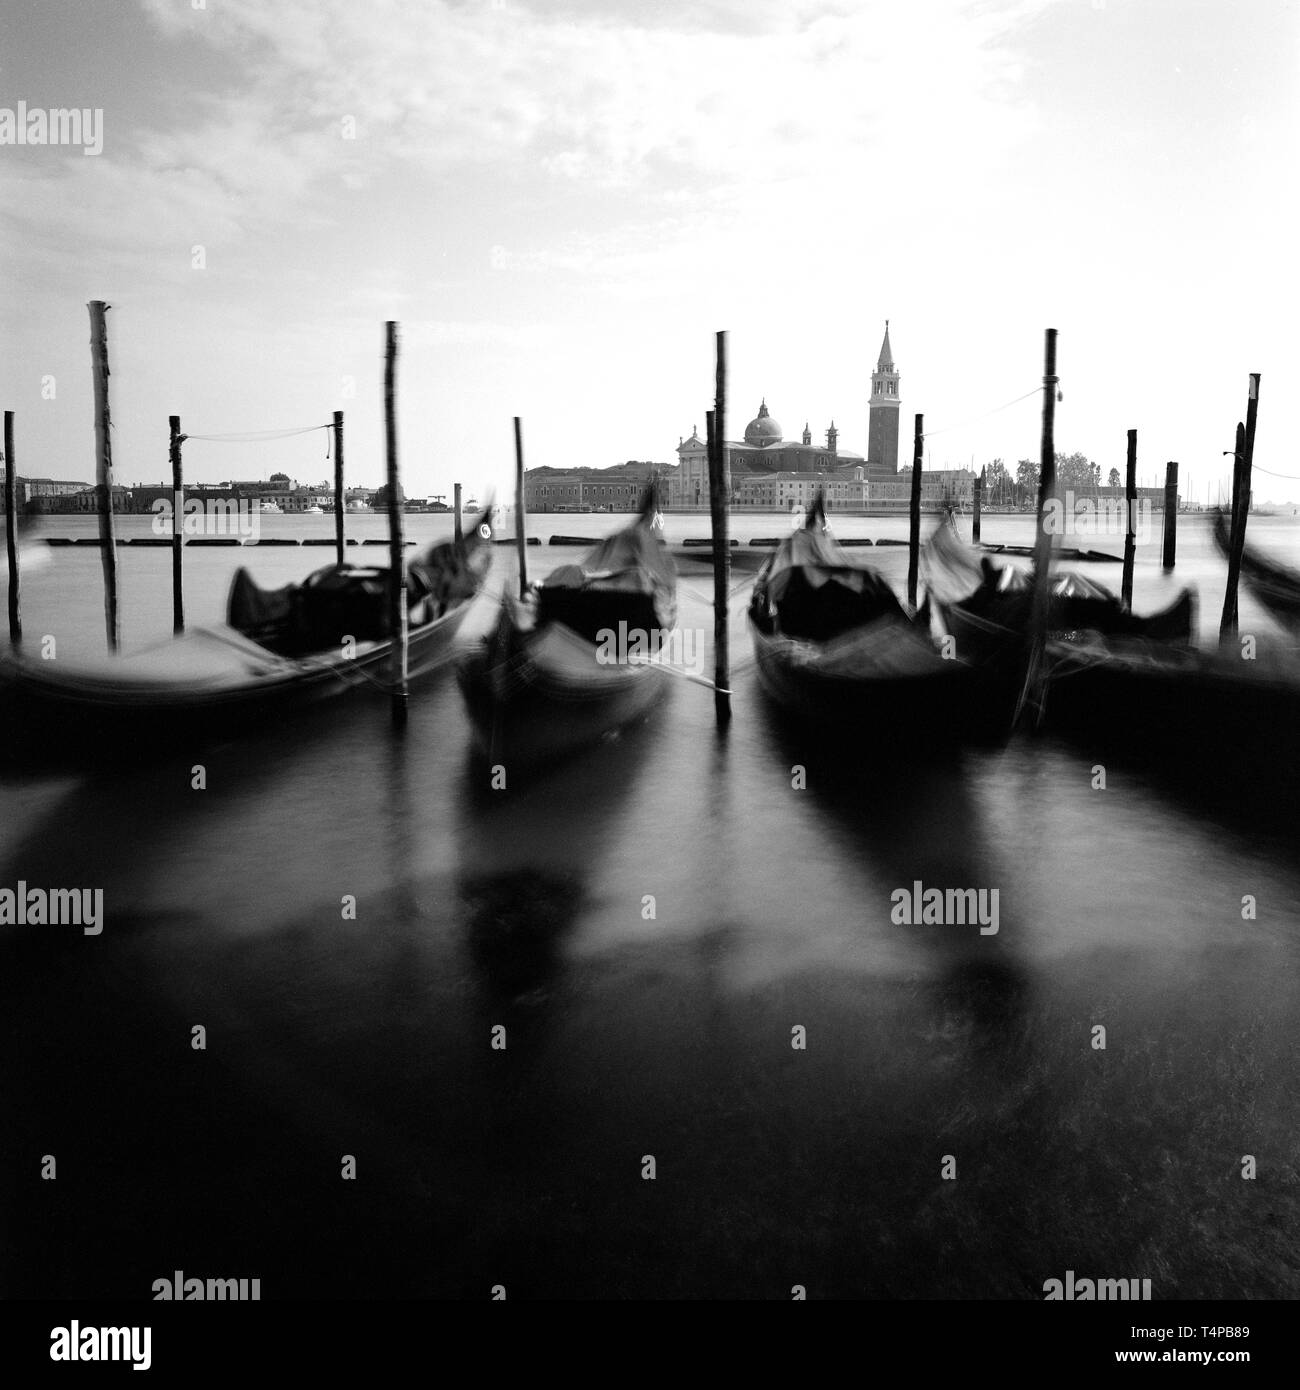 gongolas in Venice Italy. Analog black and white photography. lon exposure artwork. - Stock Image